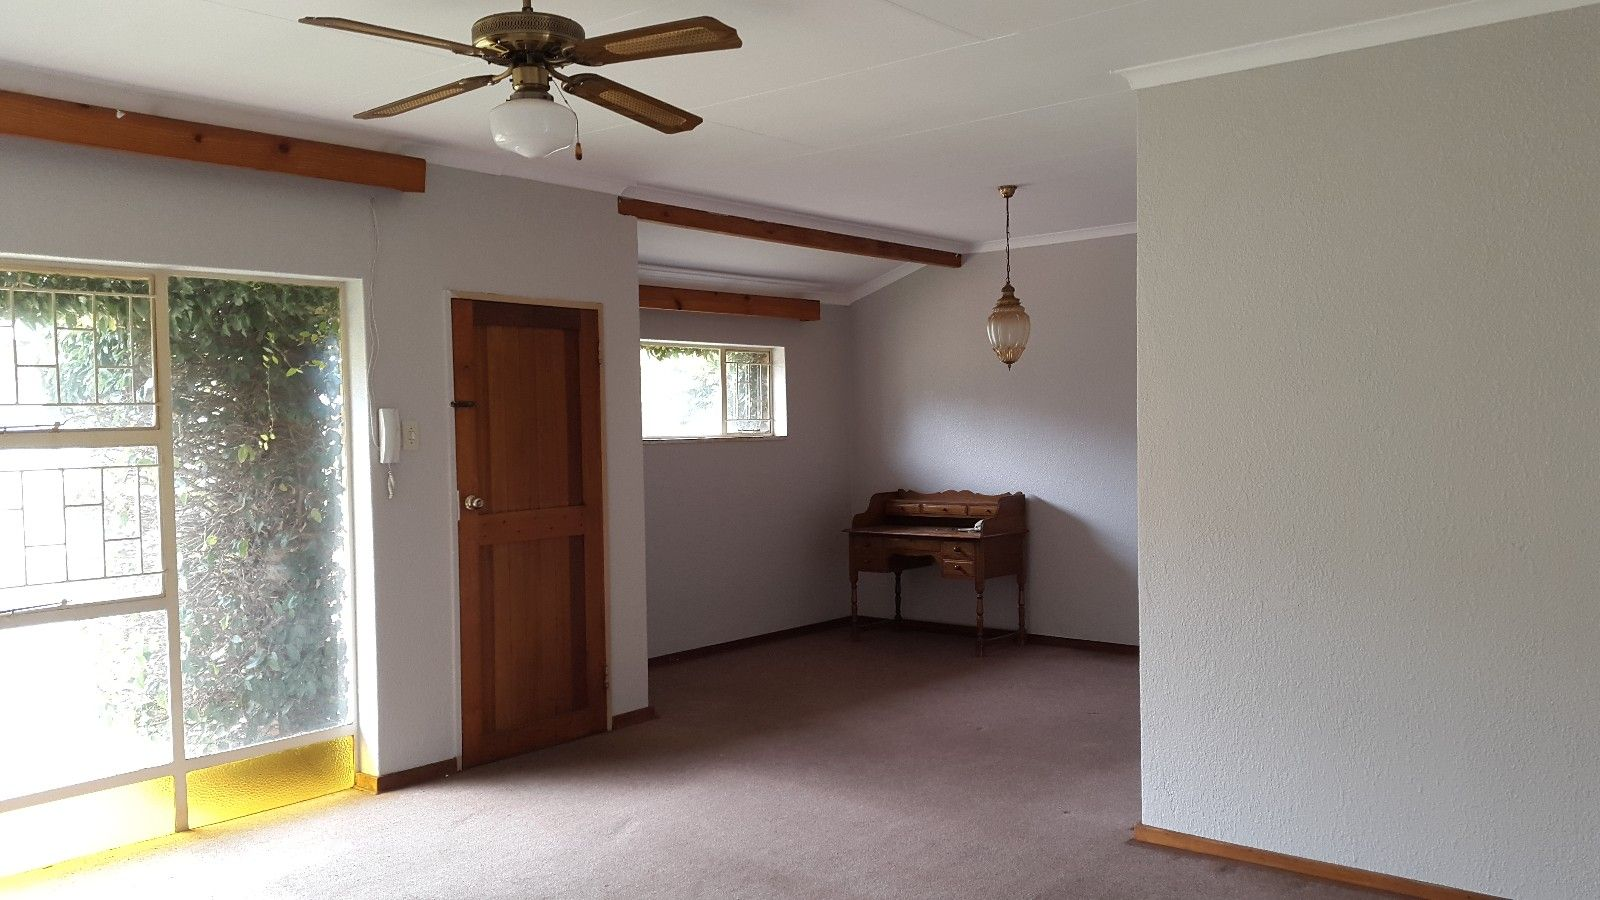 Potchefstroom Central property for sale. Ref No: 13457215. Picture no 7